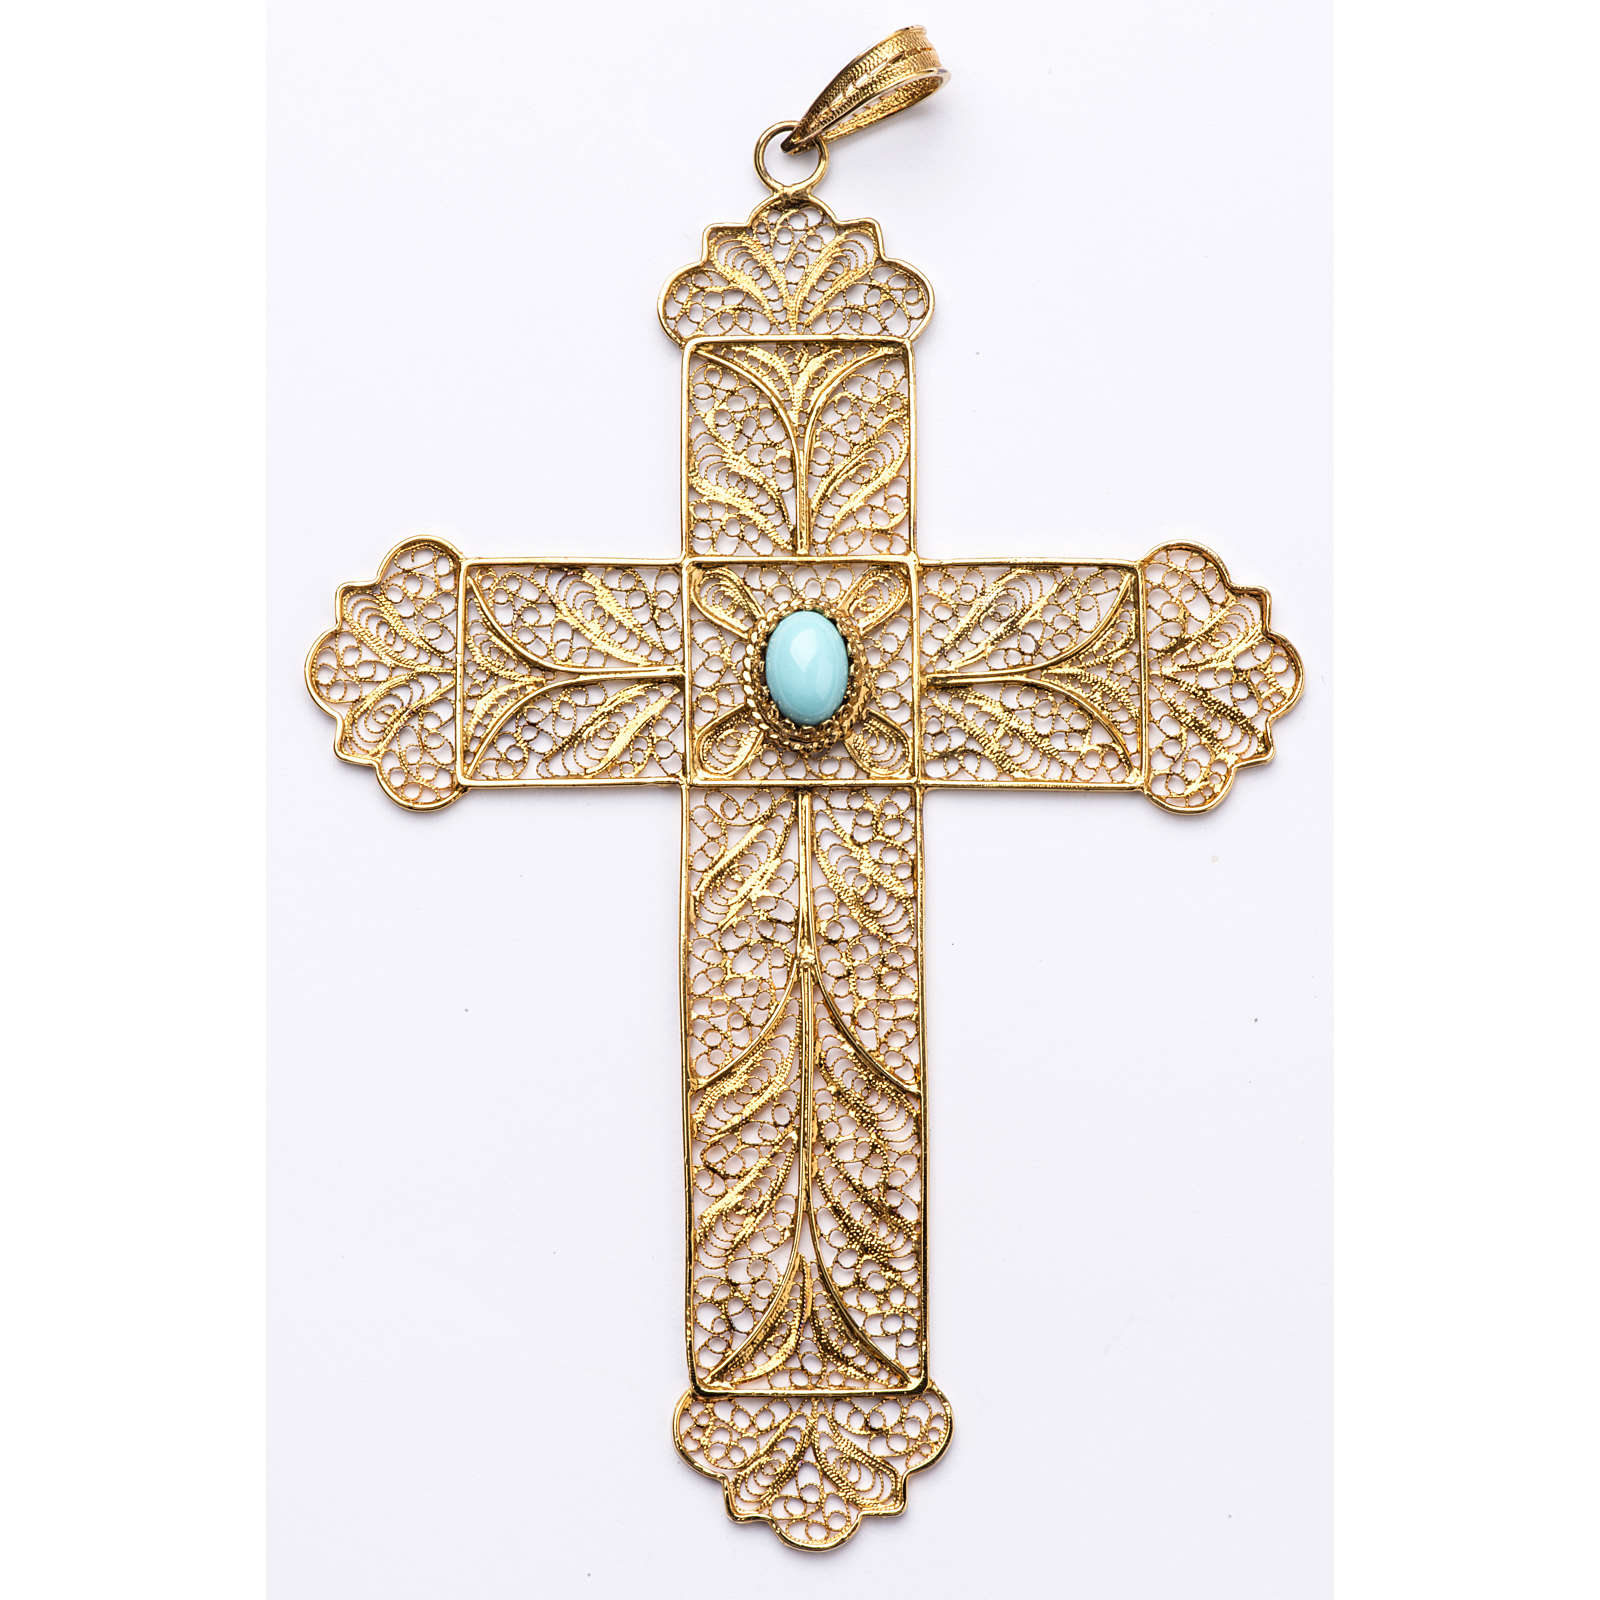 Pectoral Cross, golden silver 800 filigree with Turchese 3